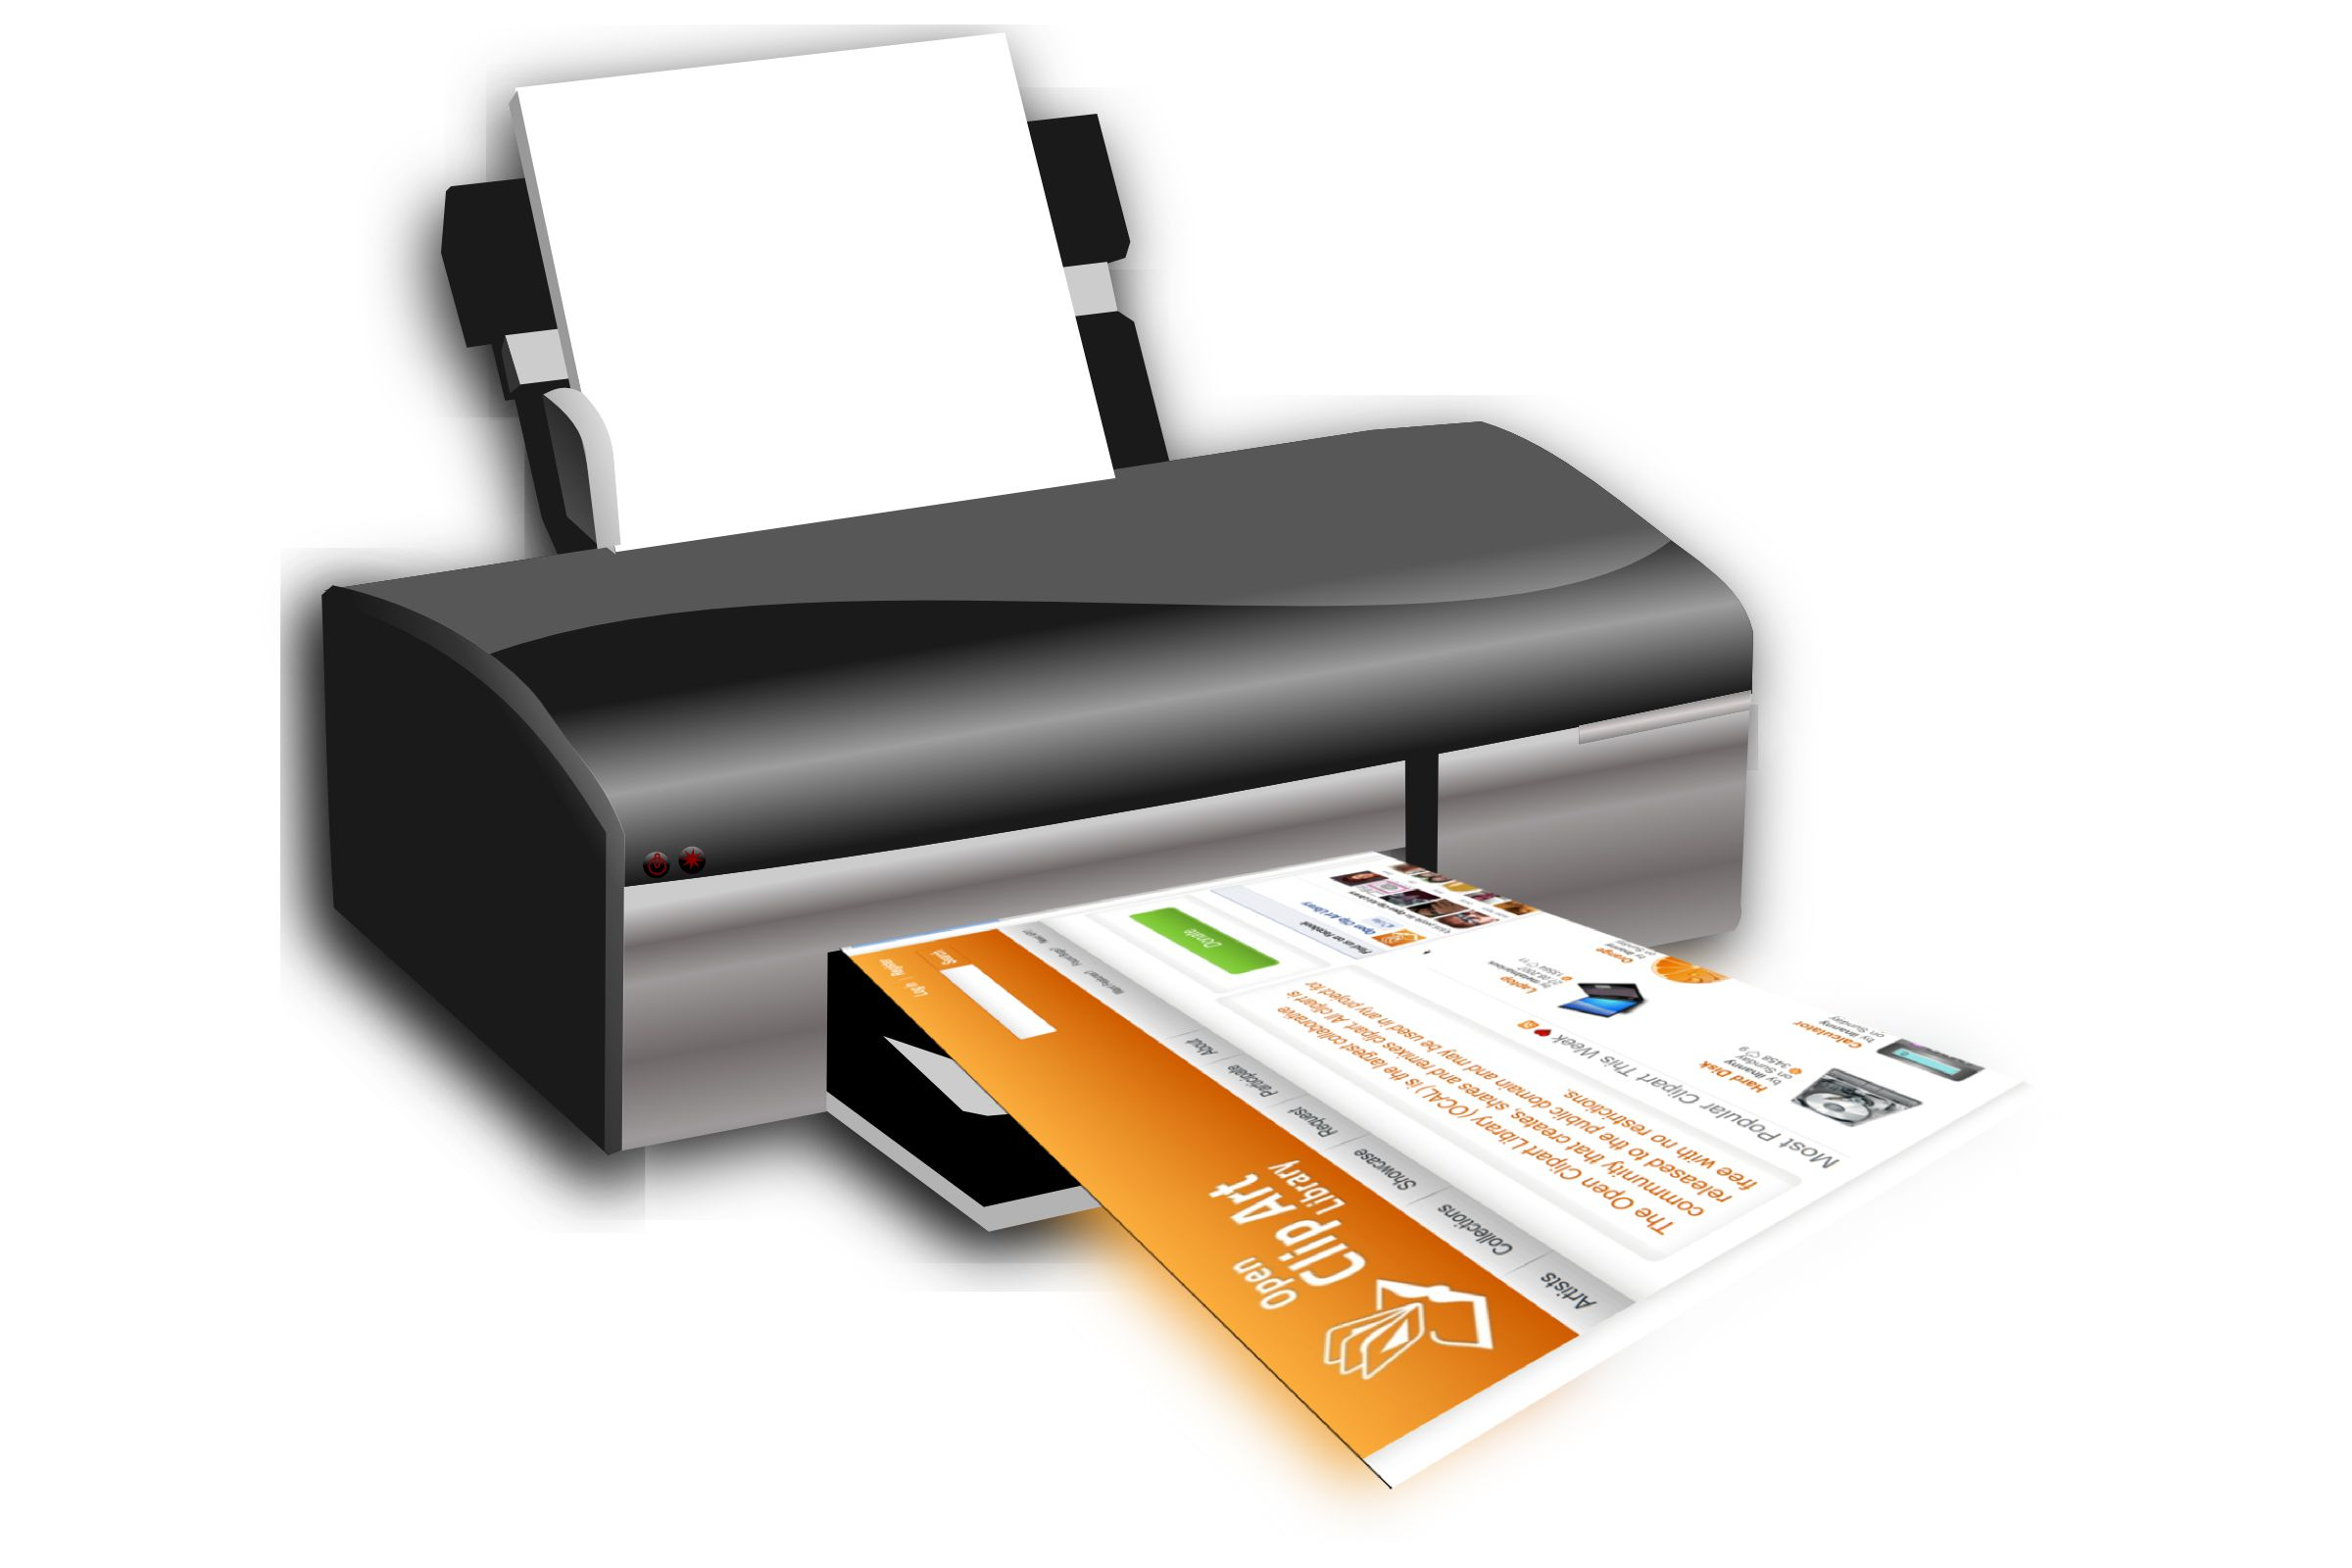 Printer printing a web page from Chrome